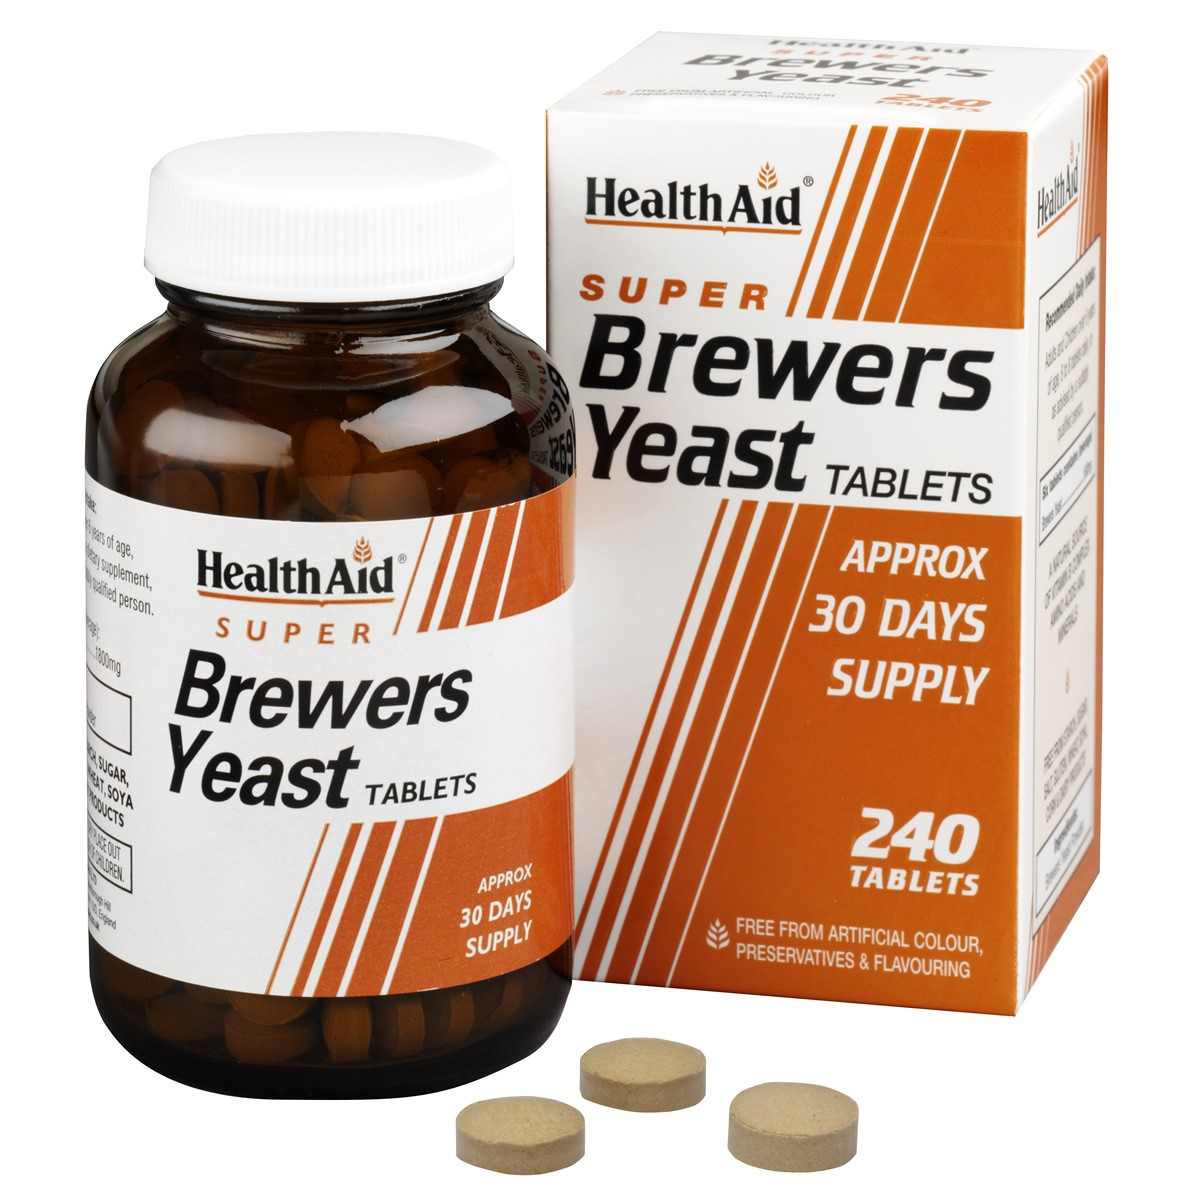 HealthAid Super Brewers Yeast Tablets